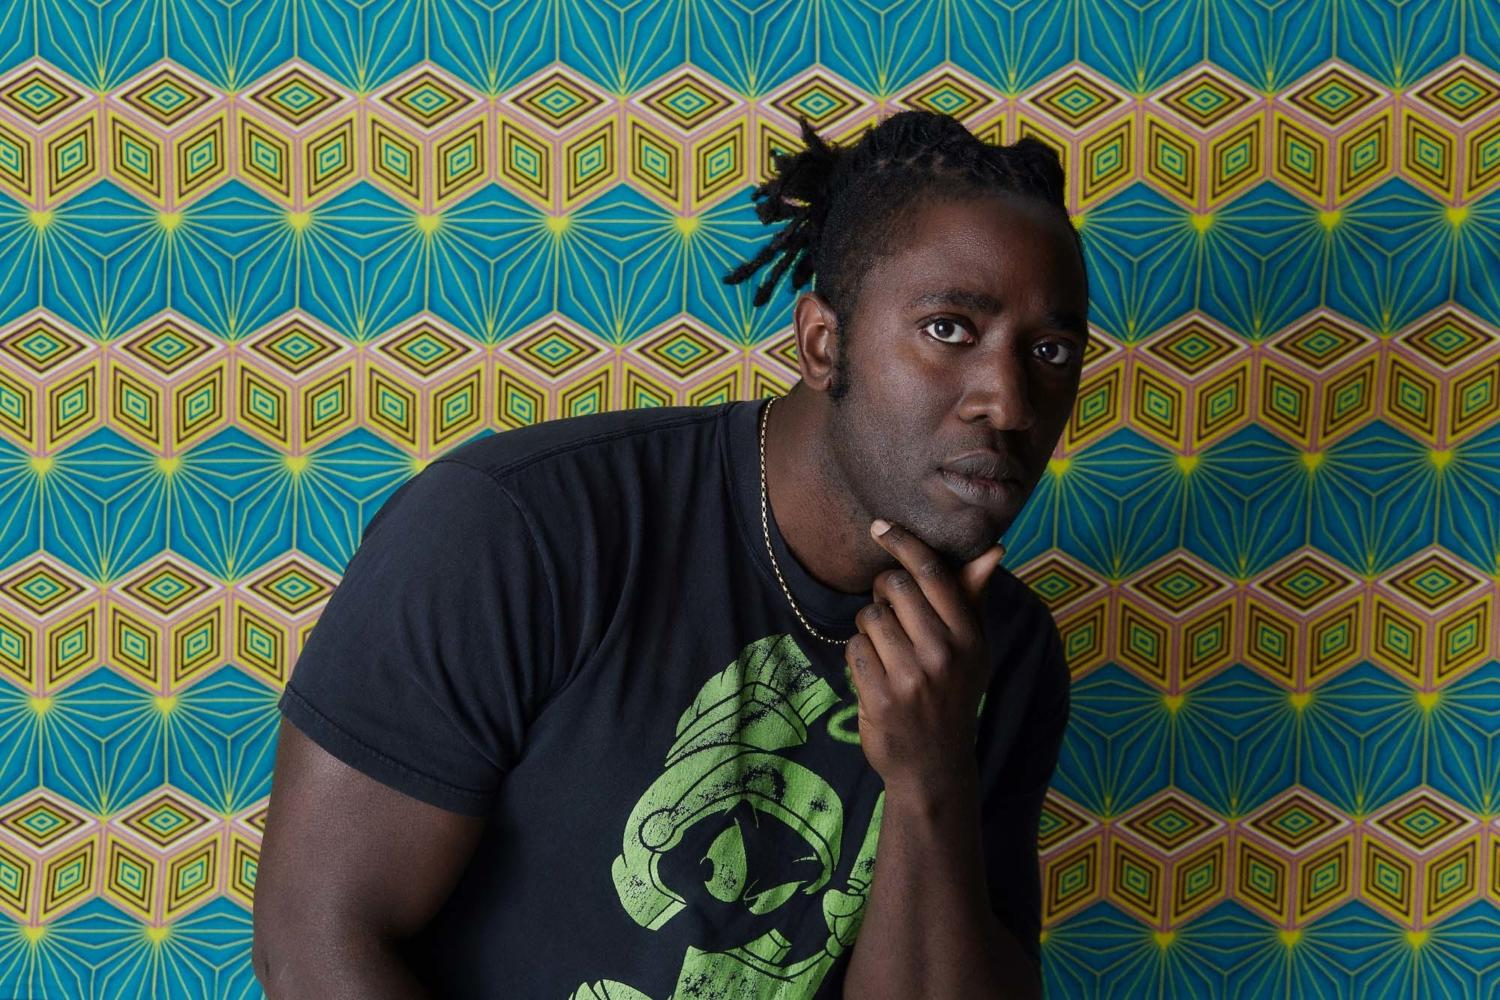 Kele Okereke unveils new glam-rock track 'BETWEEN ME AND MY MAKER'